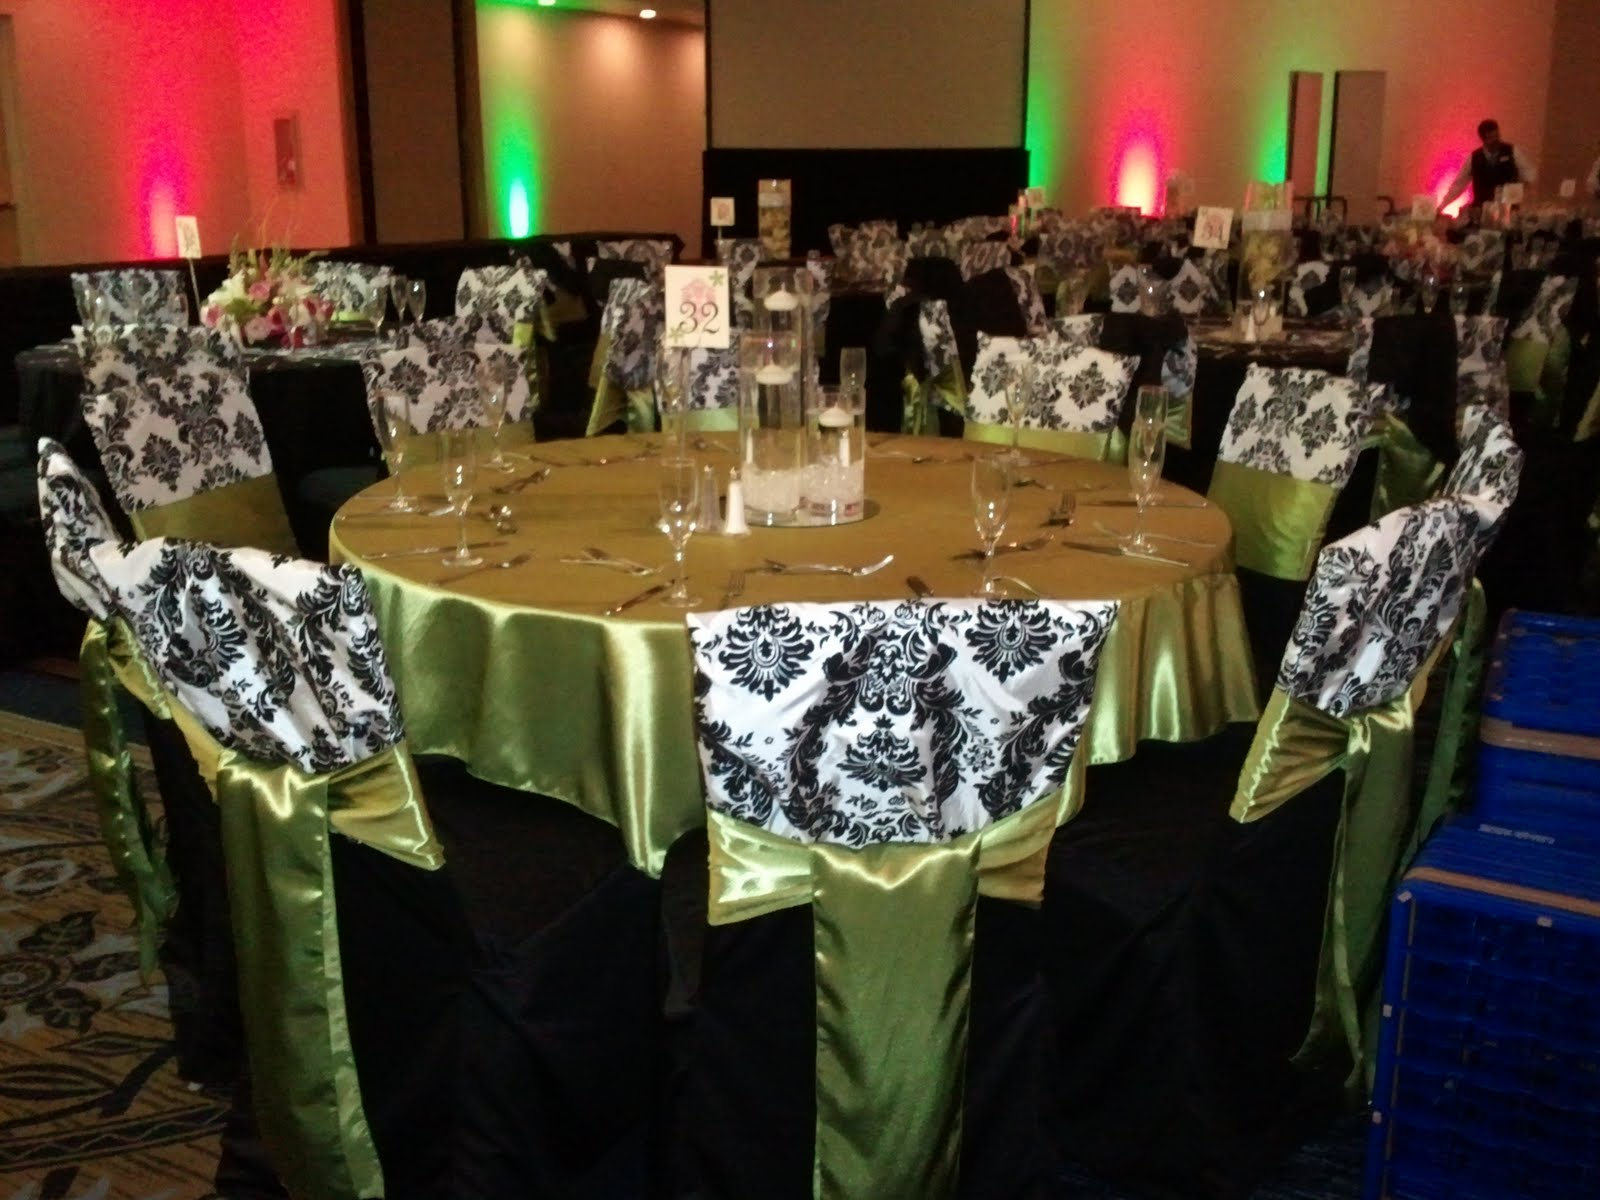 Orange County Wedding Chair Covers Rental Chair caps chair sleeves